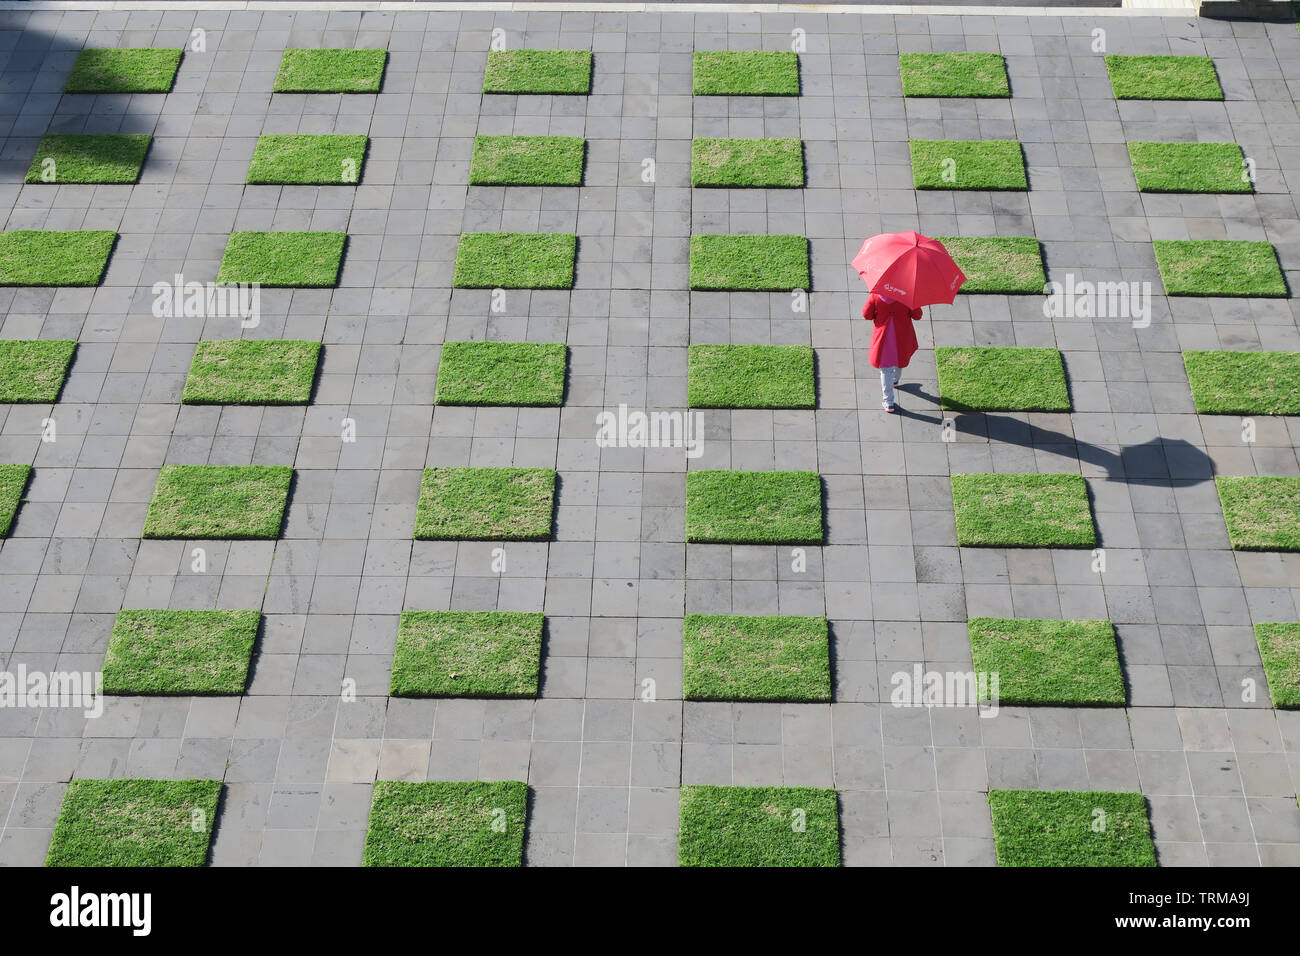 Melbourne Australia scenes: A solitary figure with a red umbrella walking around the Shrine of Remembrance Melbourne. - Stock Image